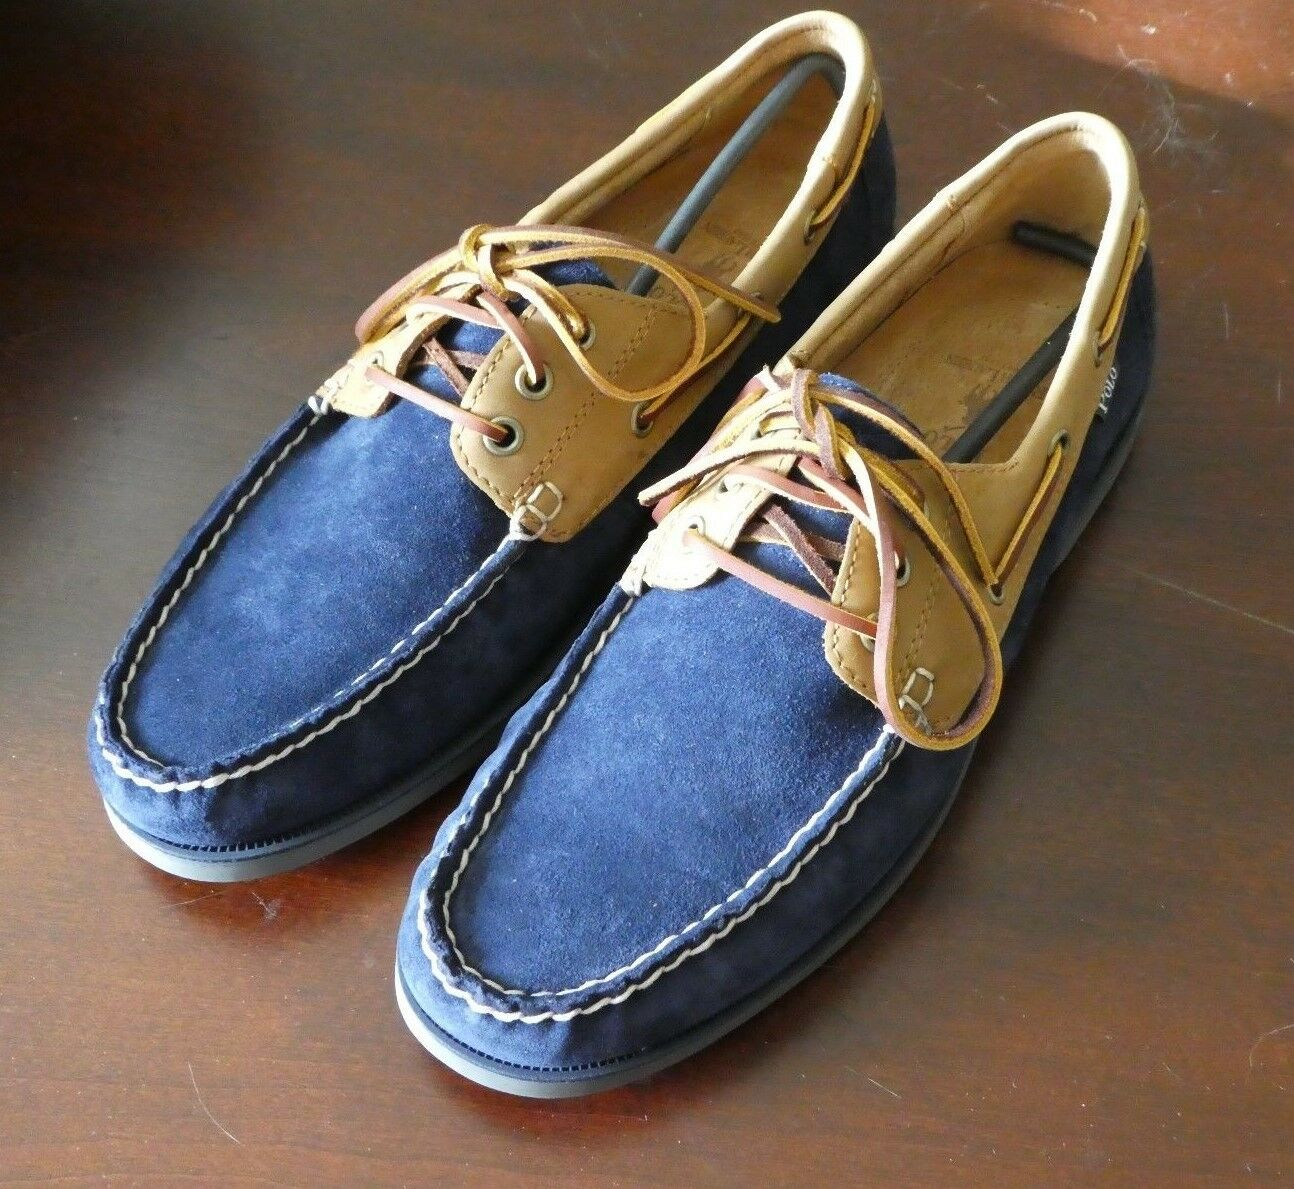 Polo Ralph Lauren Bienne Uomo shoes boat new size 10.5